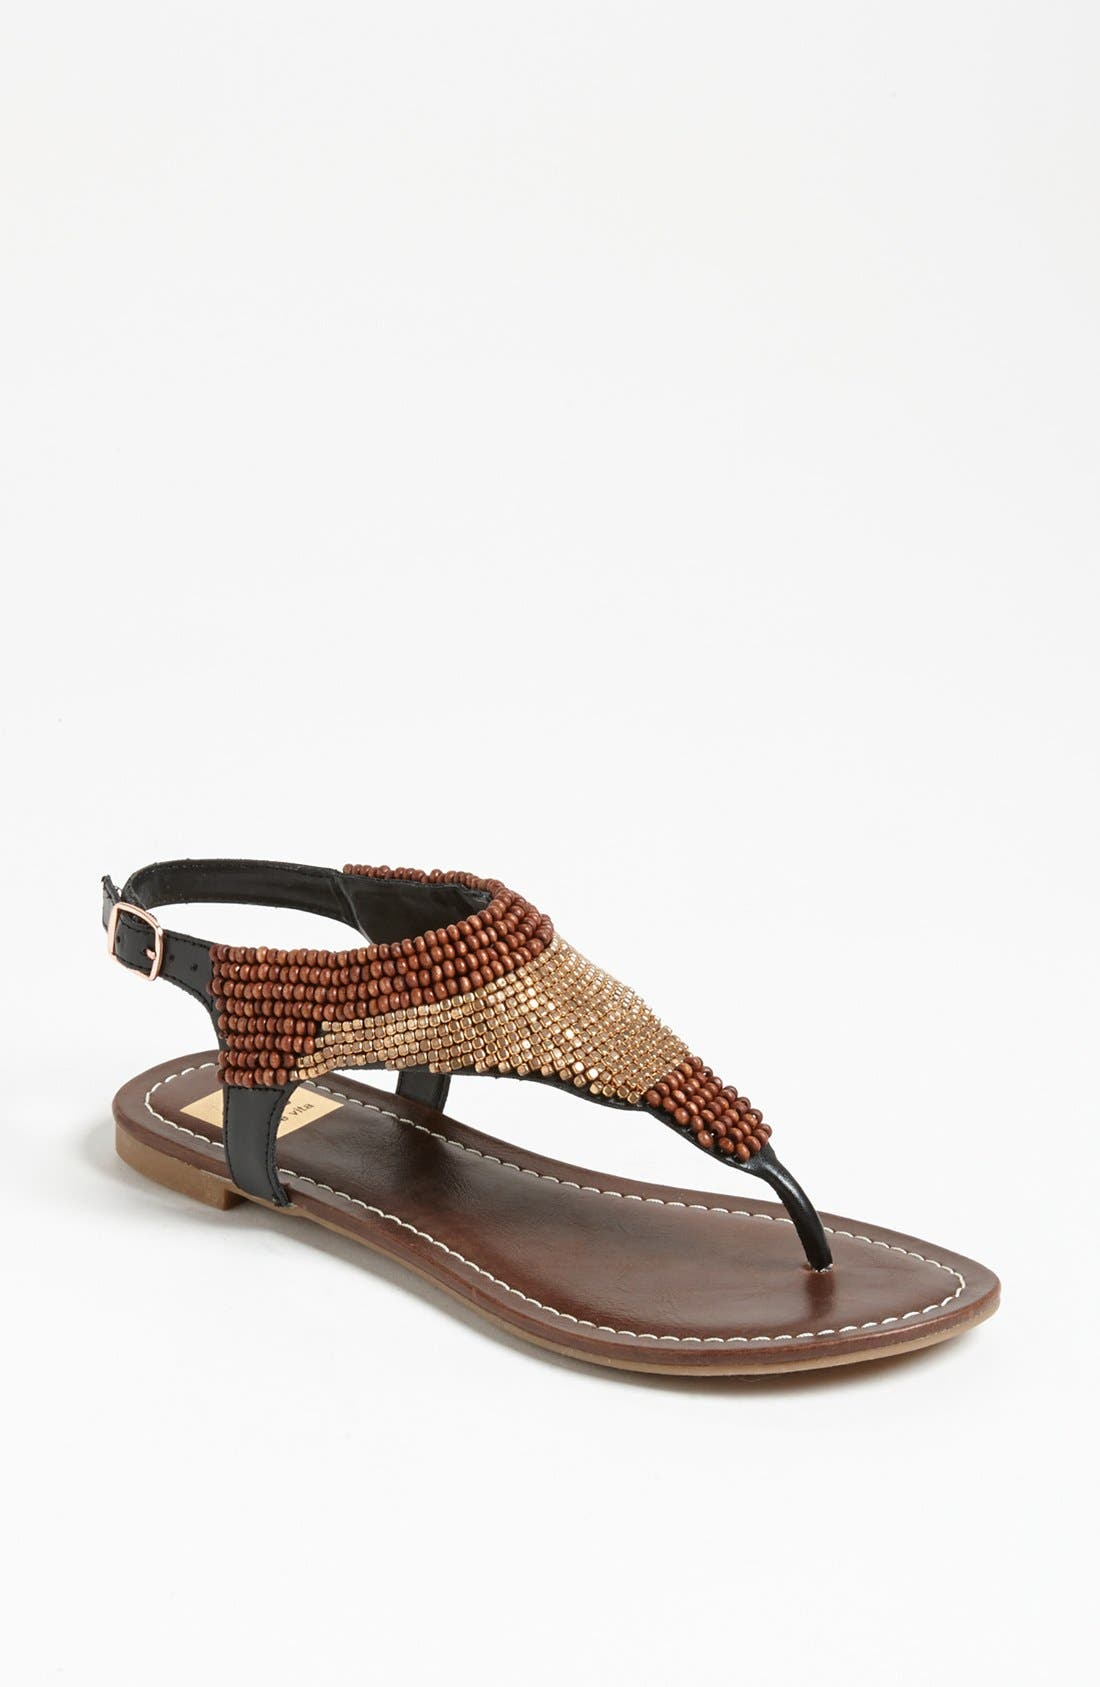 Alternate Image 1 Selected - DV by Dolce Vita 'Delancey' Sandal